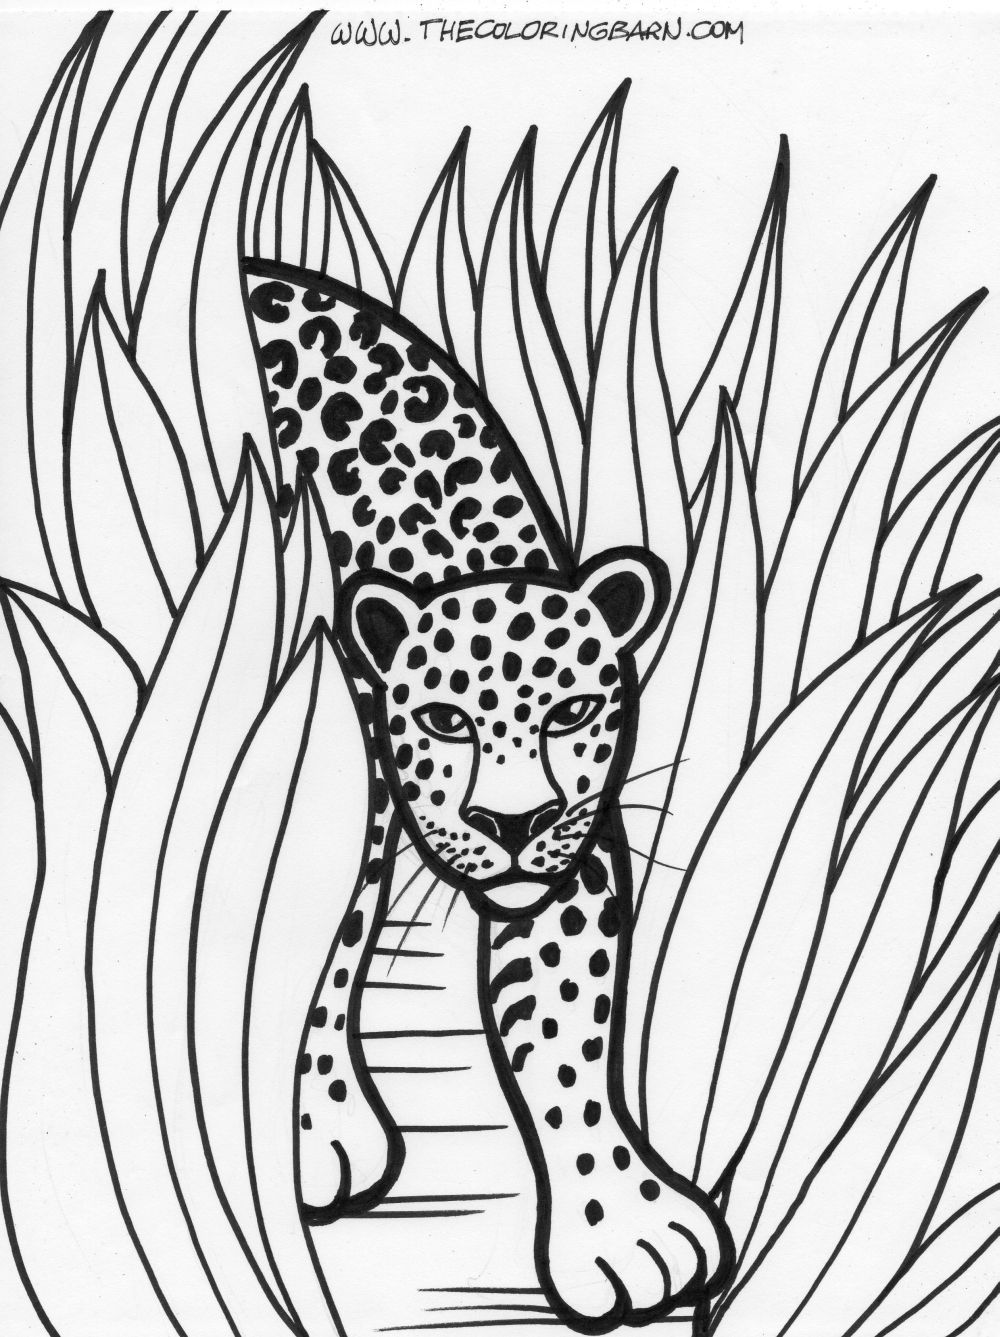 Rainforest Coloring Pages Animal Coloring Books Jungle Coloring